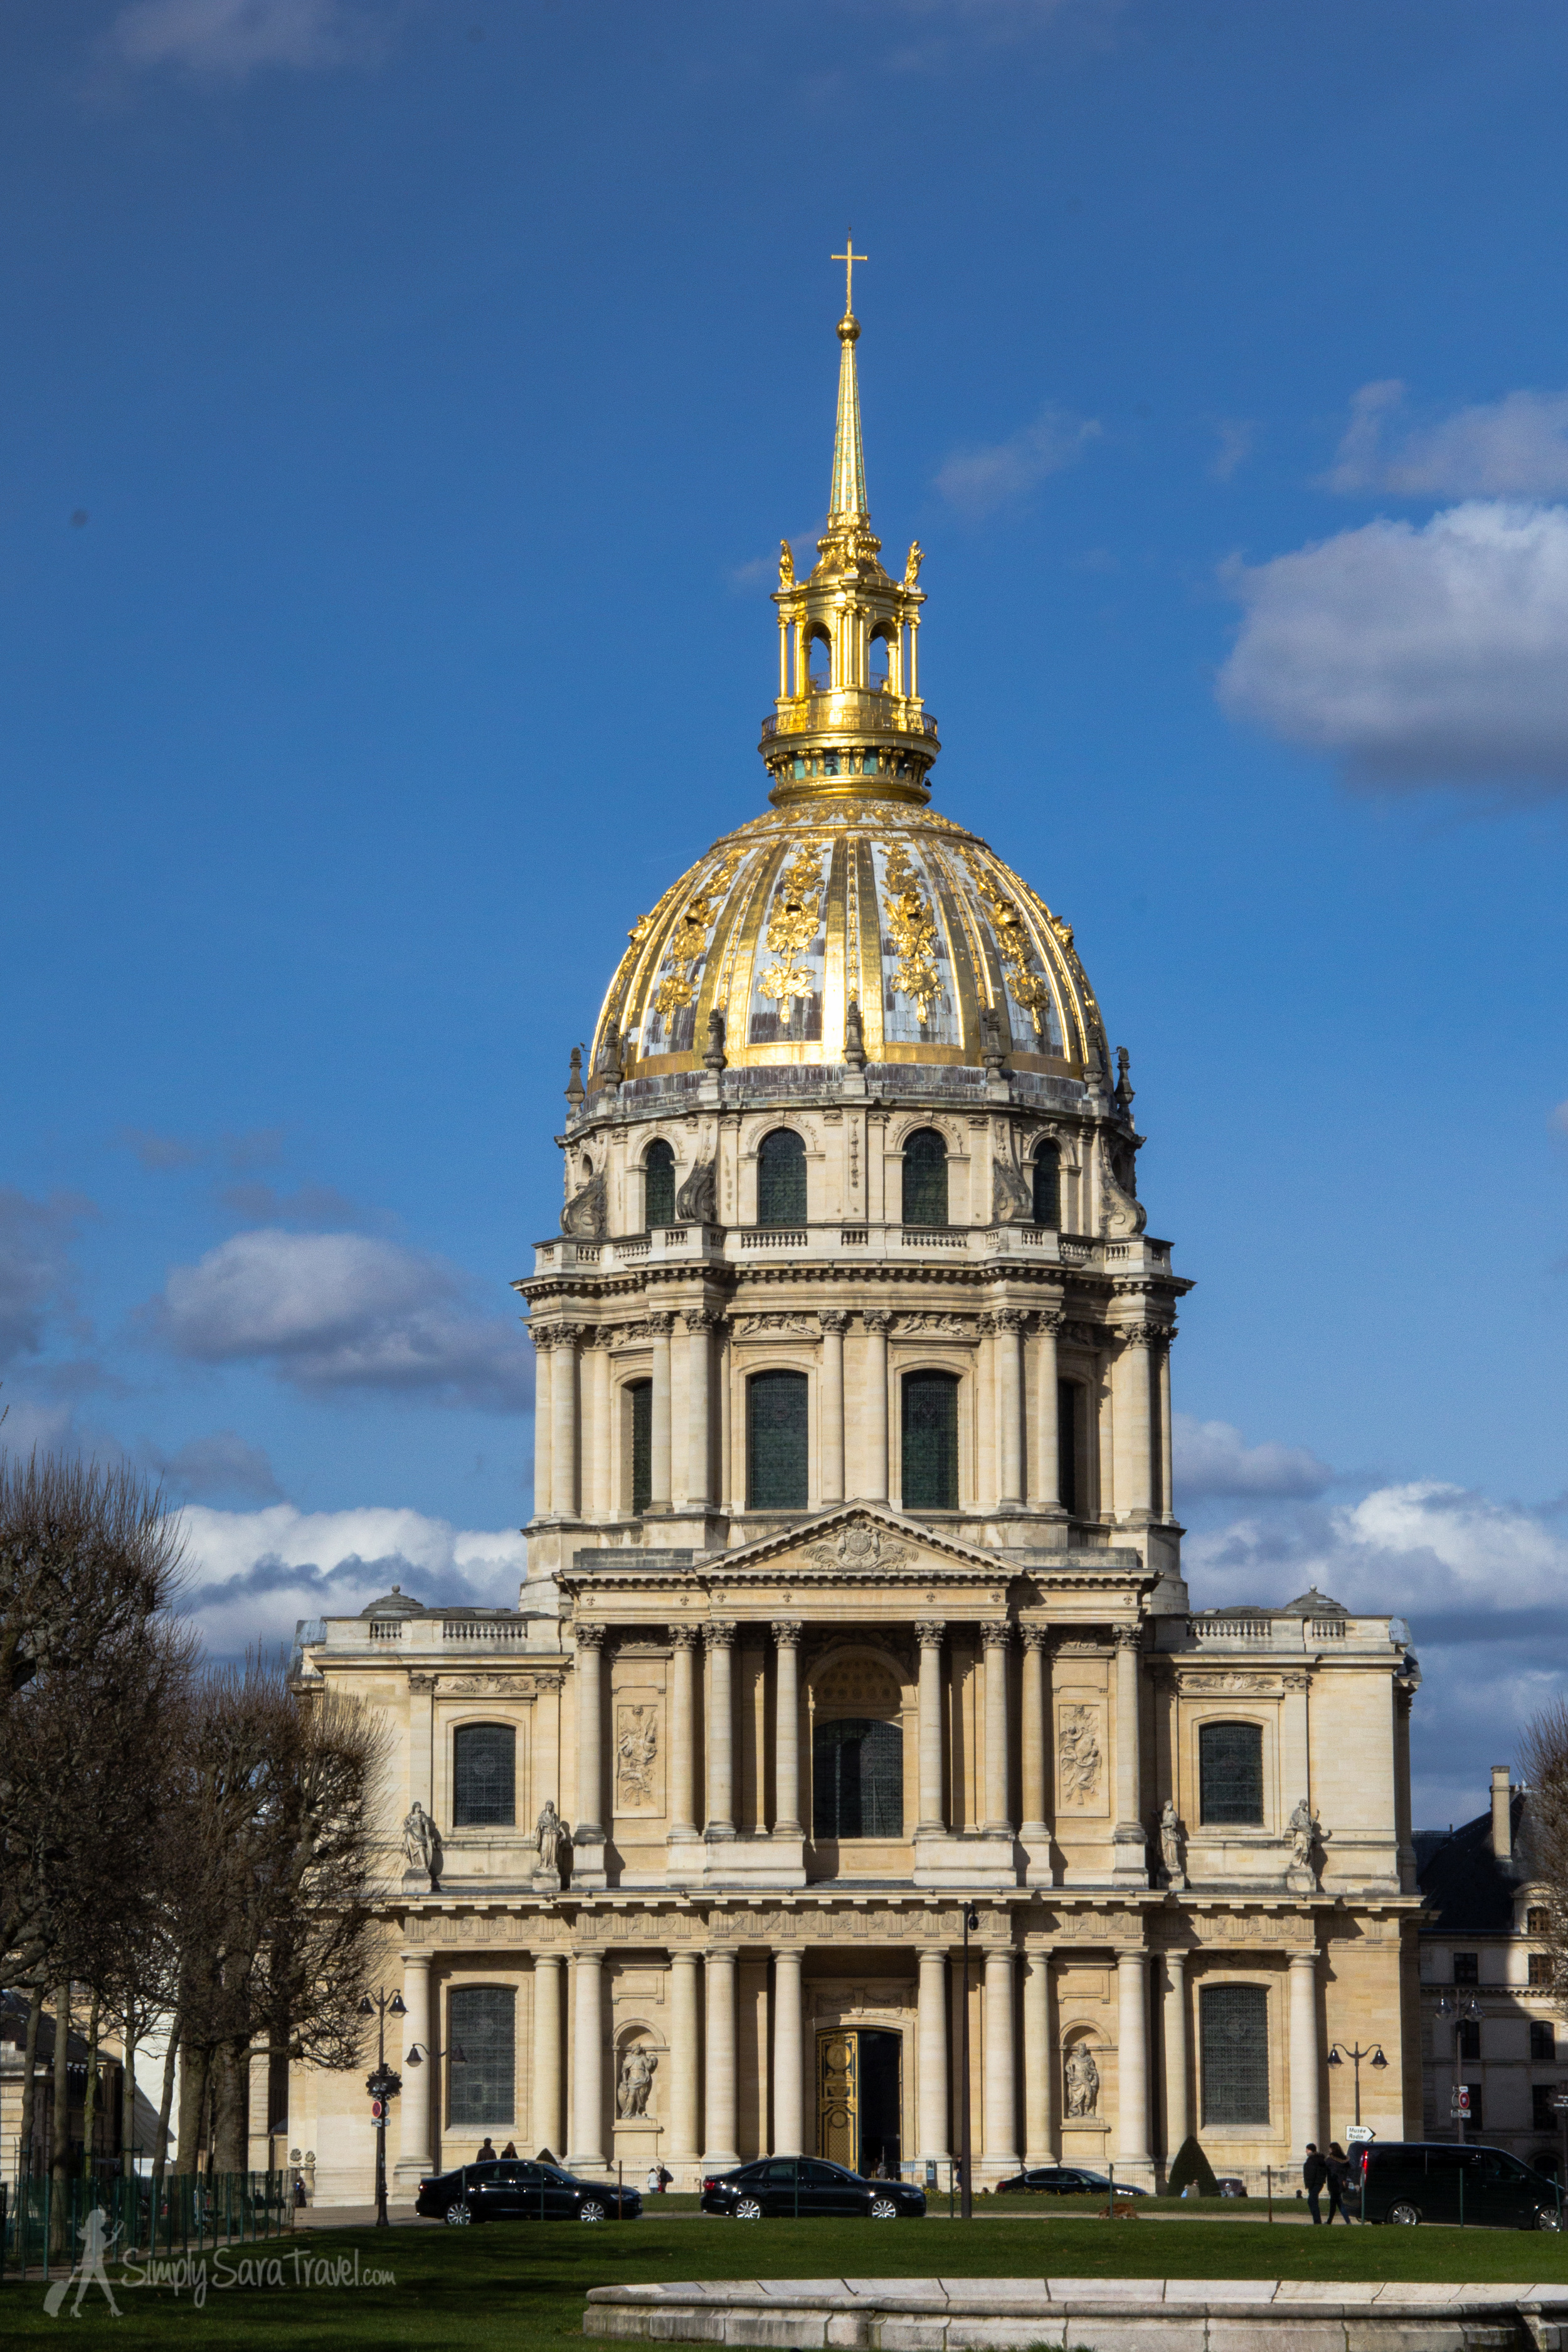 Passing by Invalides on a beautiful winter day